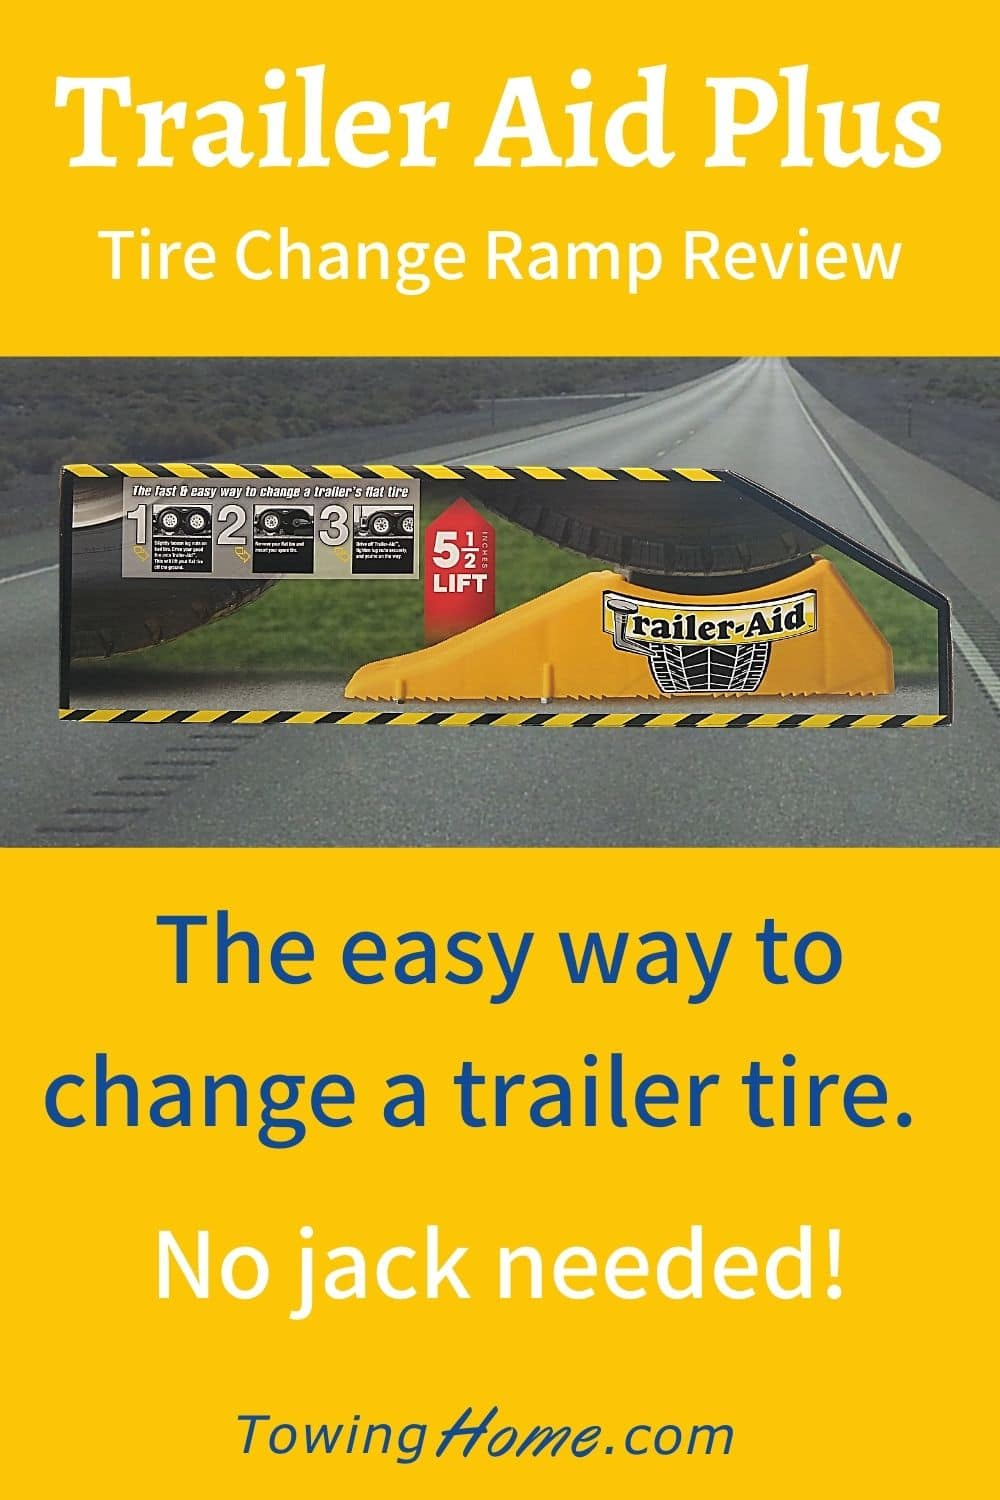 Trailer Aid Plus - Easily Change an RV Tire Without a Jack